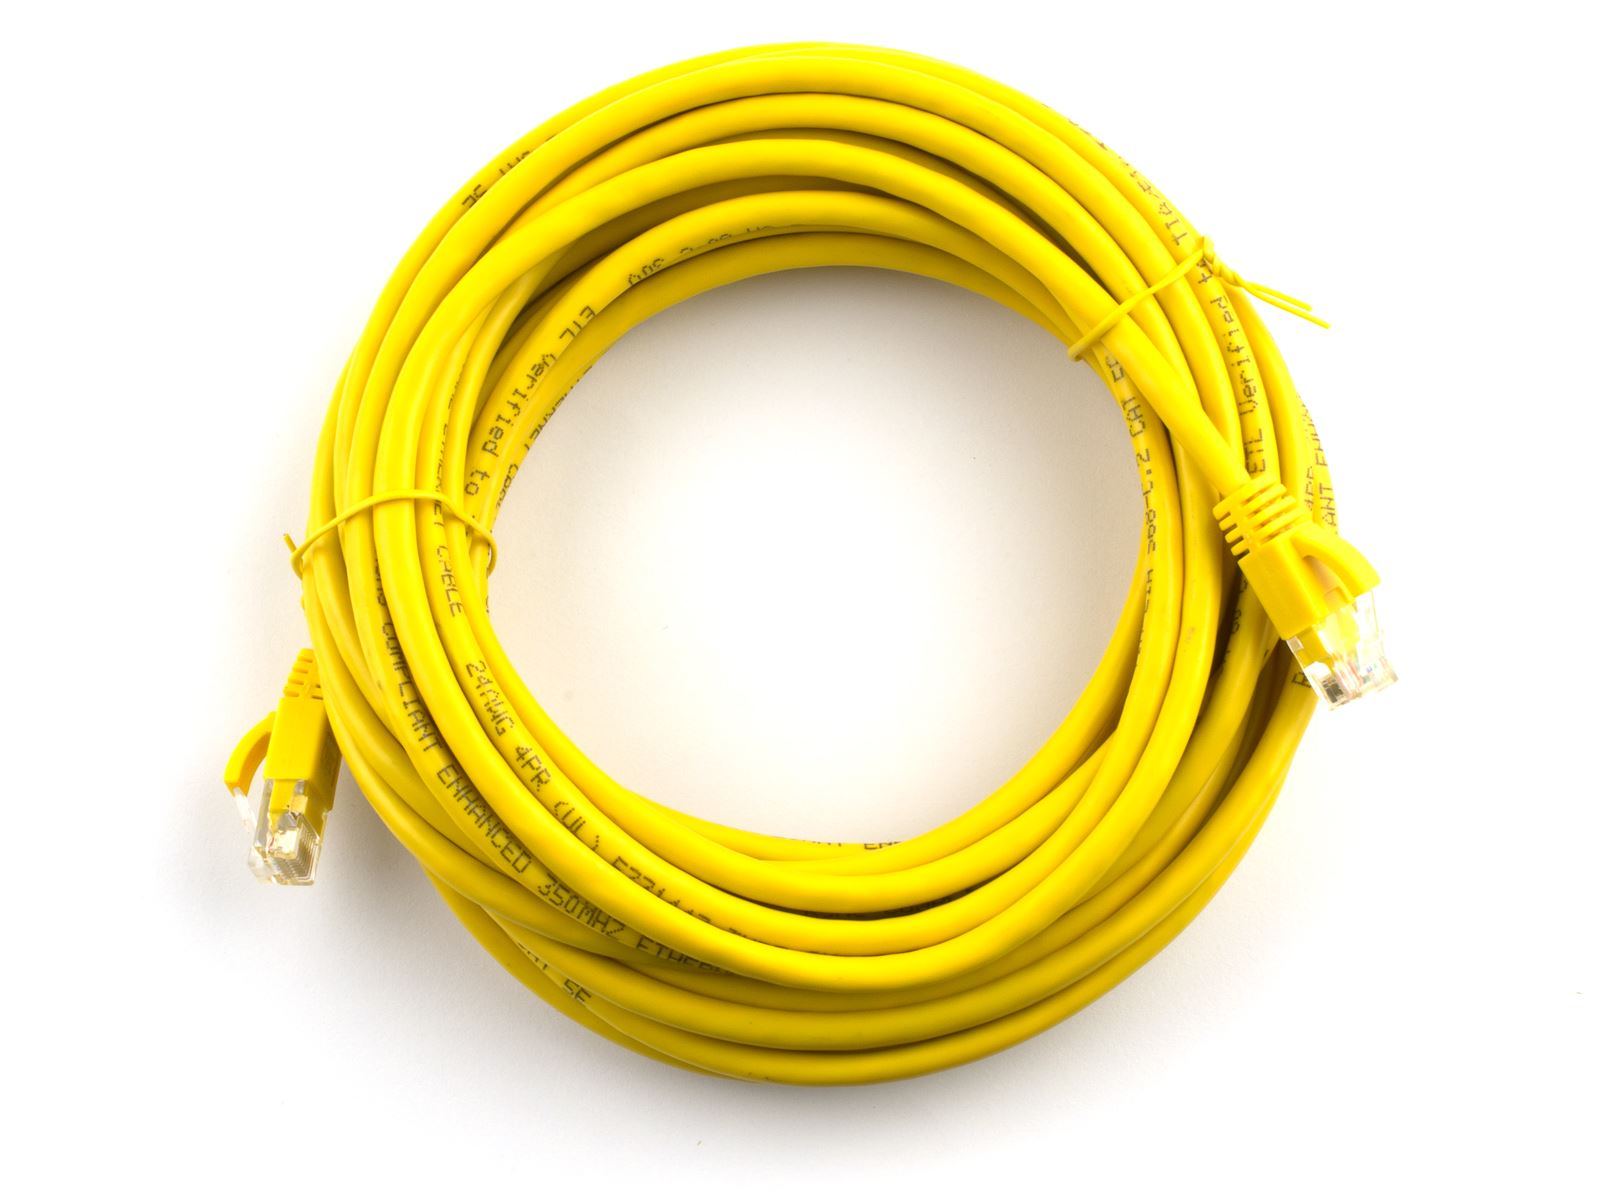 Booted Yellow Networx CAT5e Patch Cable 25 FT